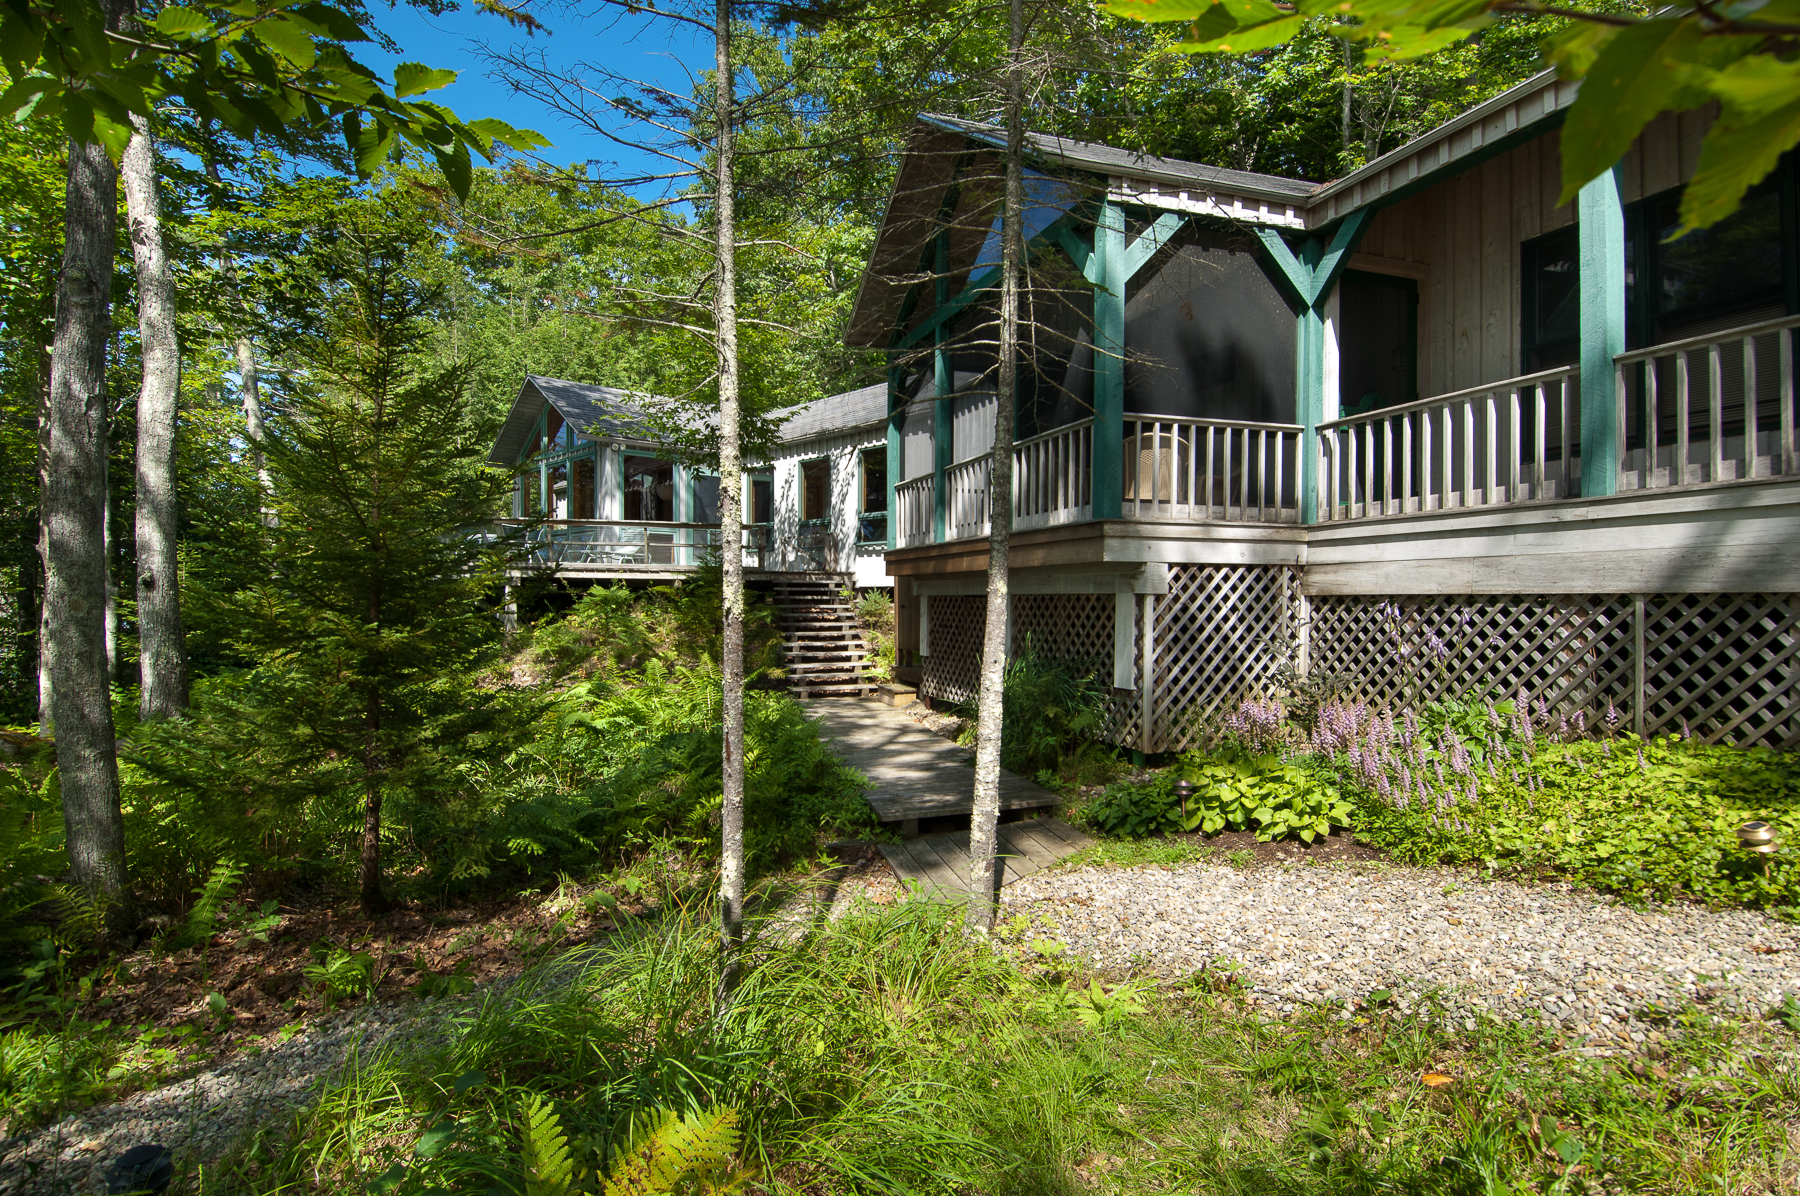 Casa Unifamiliar por un Venta en 29 Good Day Drive South Bristol, Maine, 04573 Estados Unidos